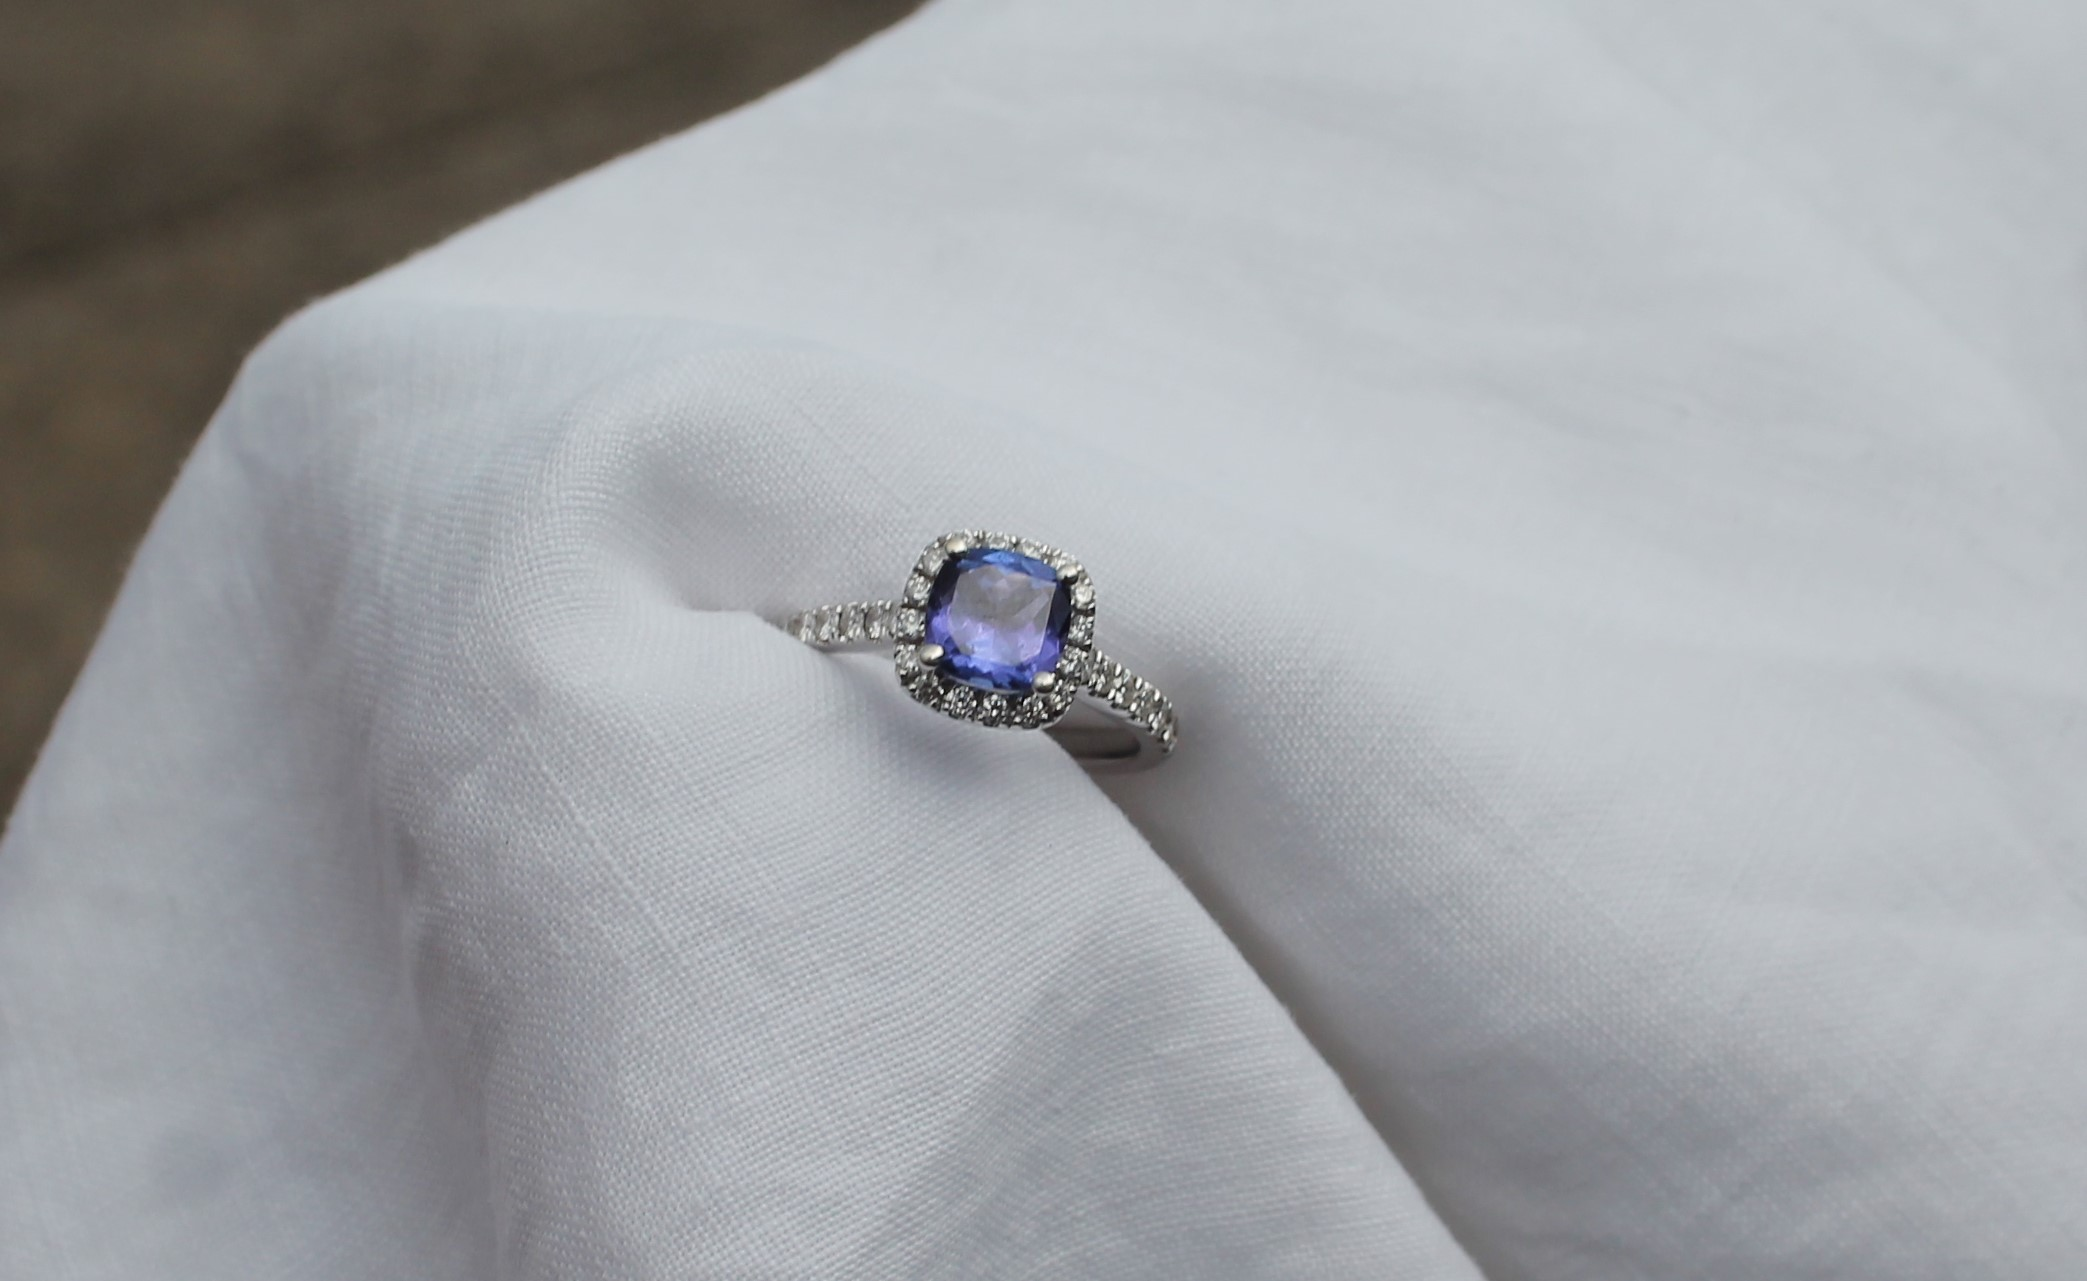 Lot 55 - Estimate £600 - 800, A tanzanite and diamond ring, the central square cut tanzanite approximately 1.18ct surrounded by and two the shoulders with round brilliant cut diamonds to an 18ct white gold setting and shank, size L 1/2, approximately 3.5 grams